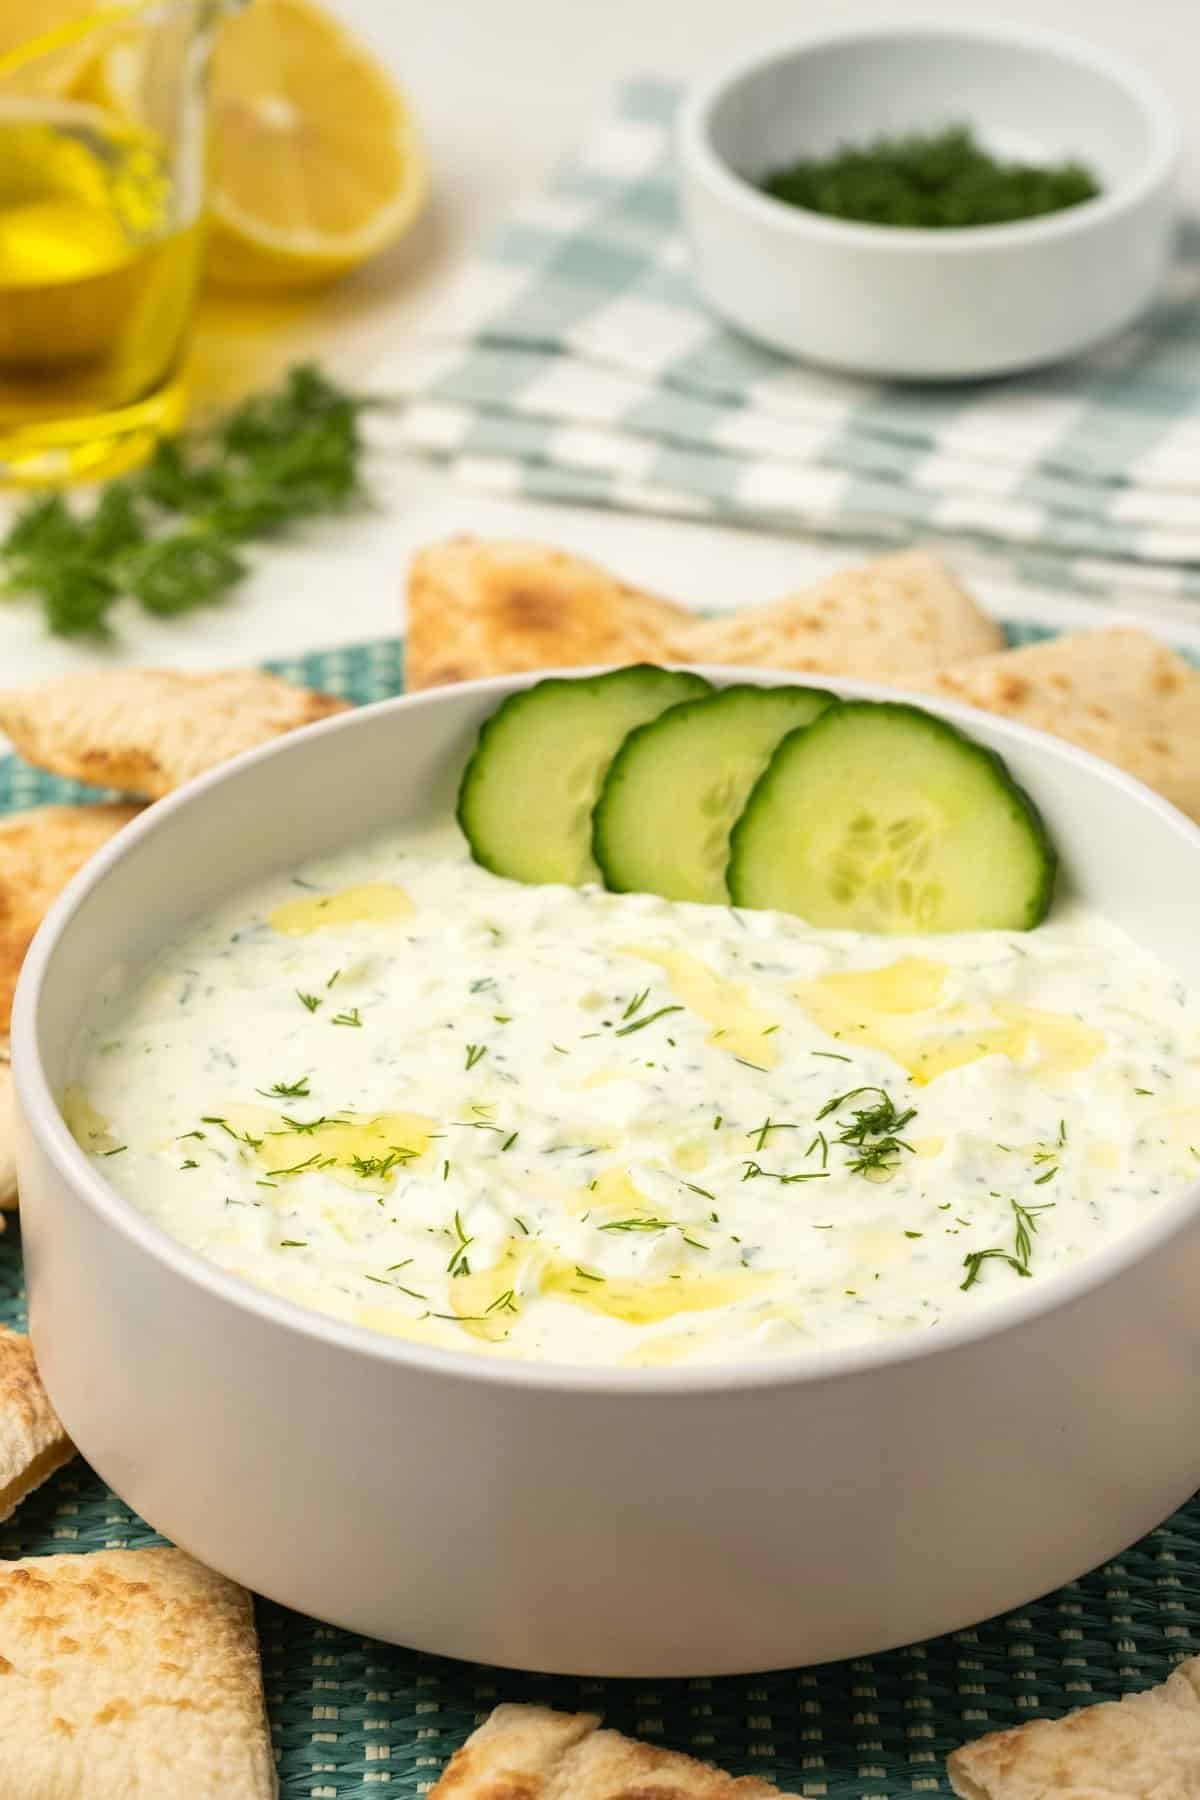 Tzatziki topped with olive oil, fresh dill and cucumber slices in a white bowl.